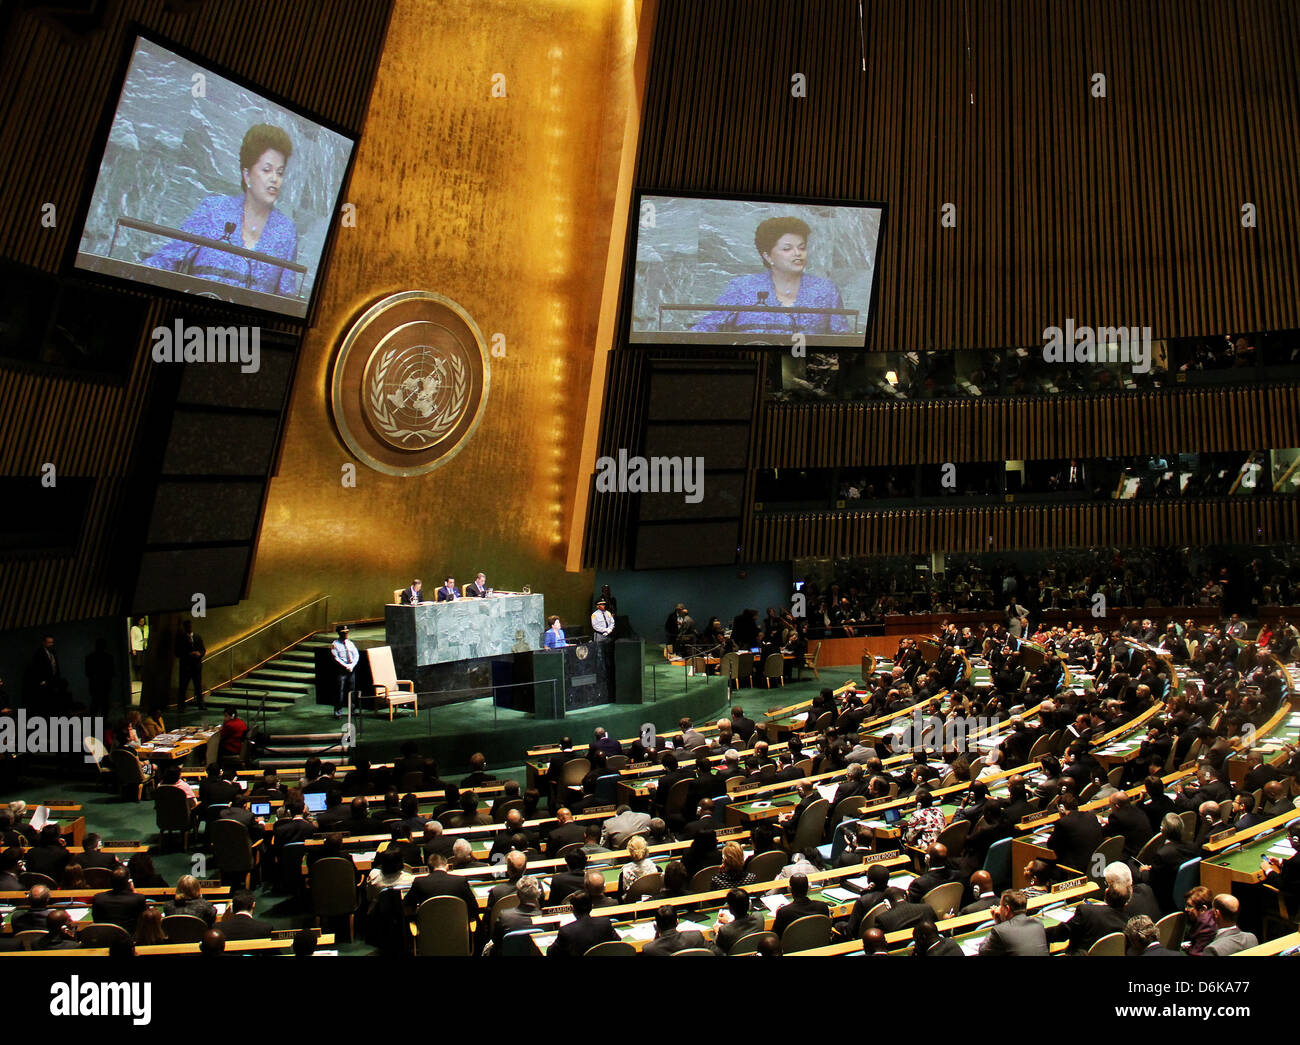 Brazilian President Dilma Rousseff delivers an address at the United Nations General Assembly at UN headquarters - Stock Image